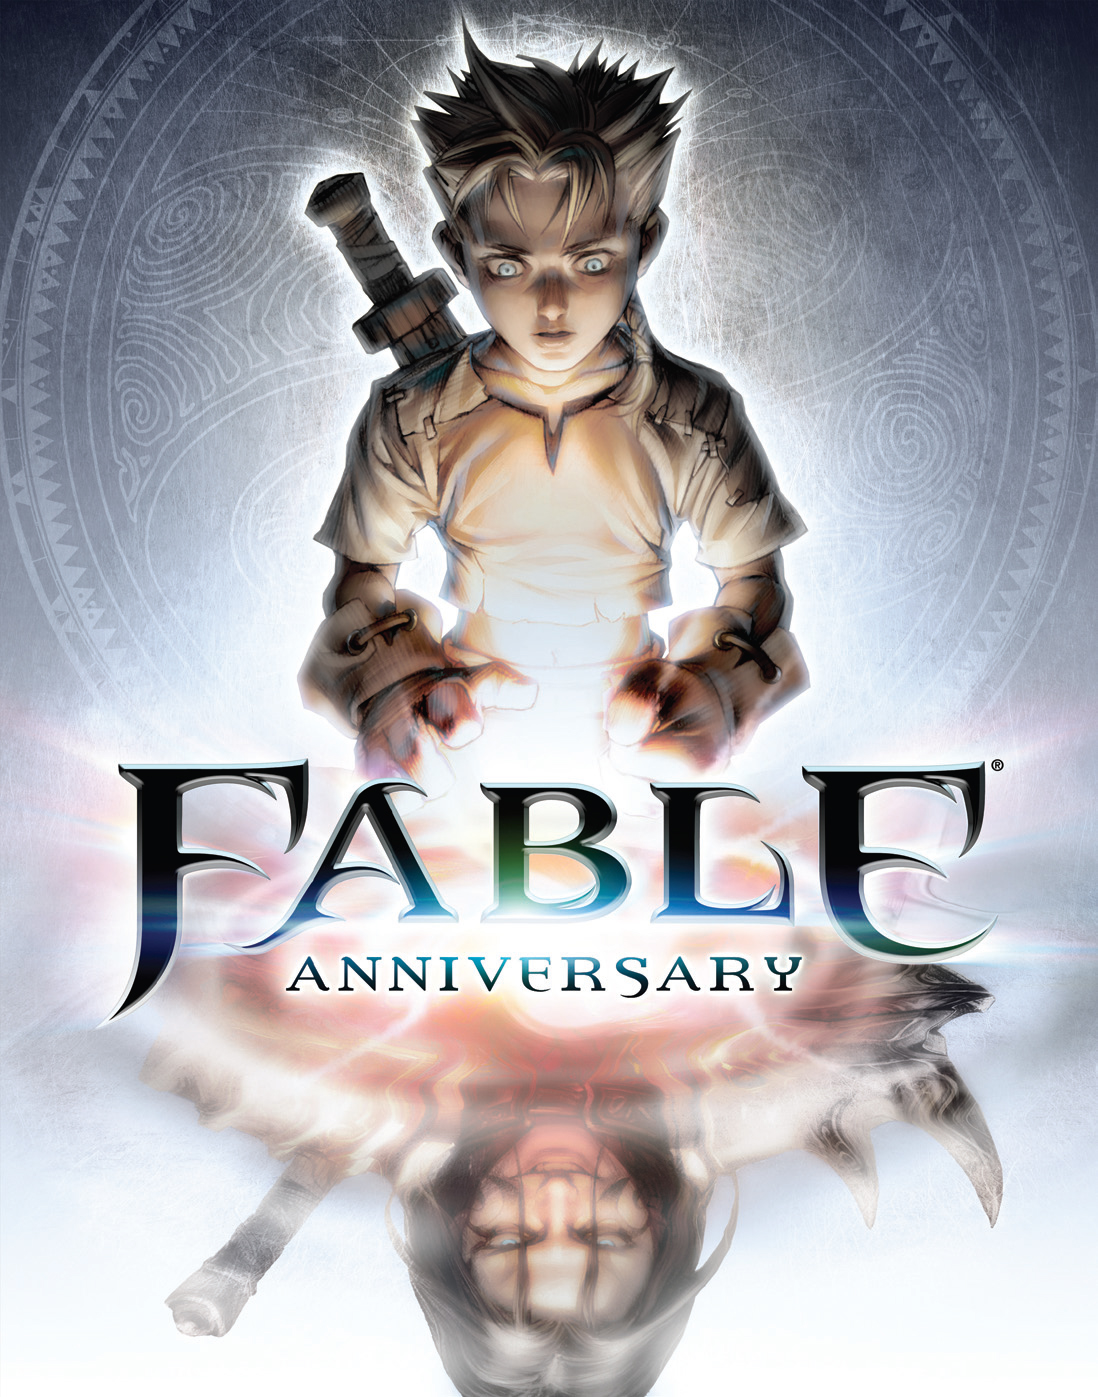 Fable Anniversary art